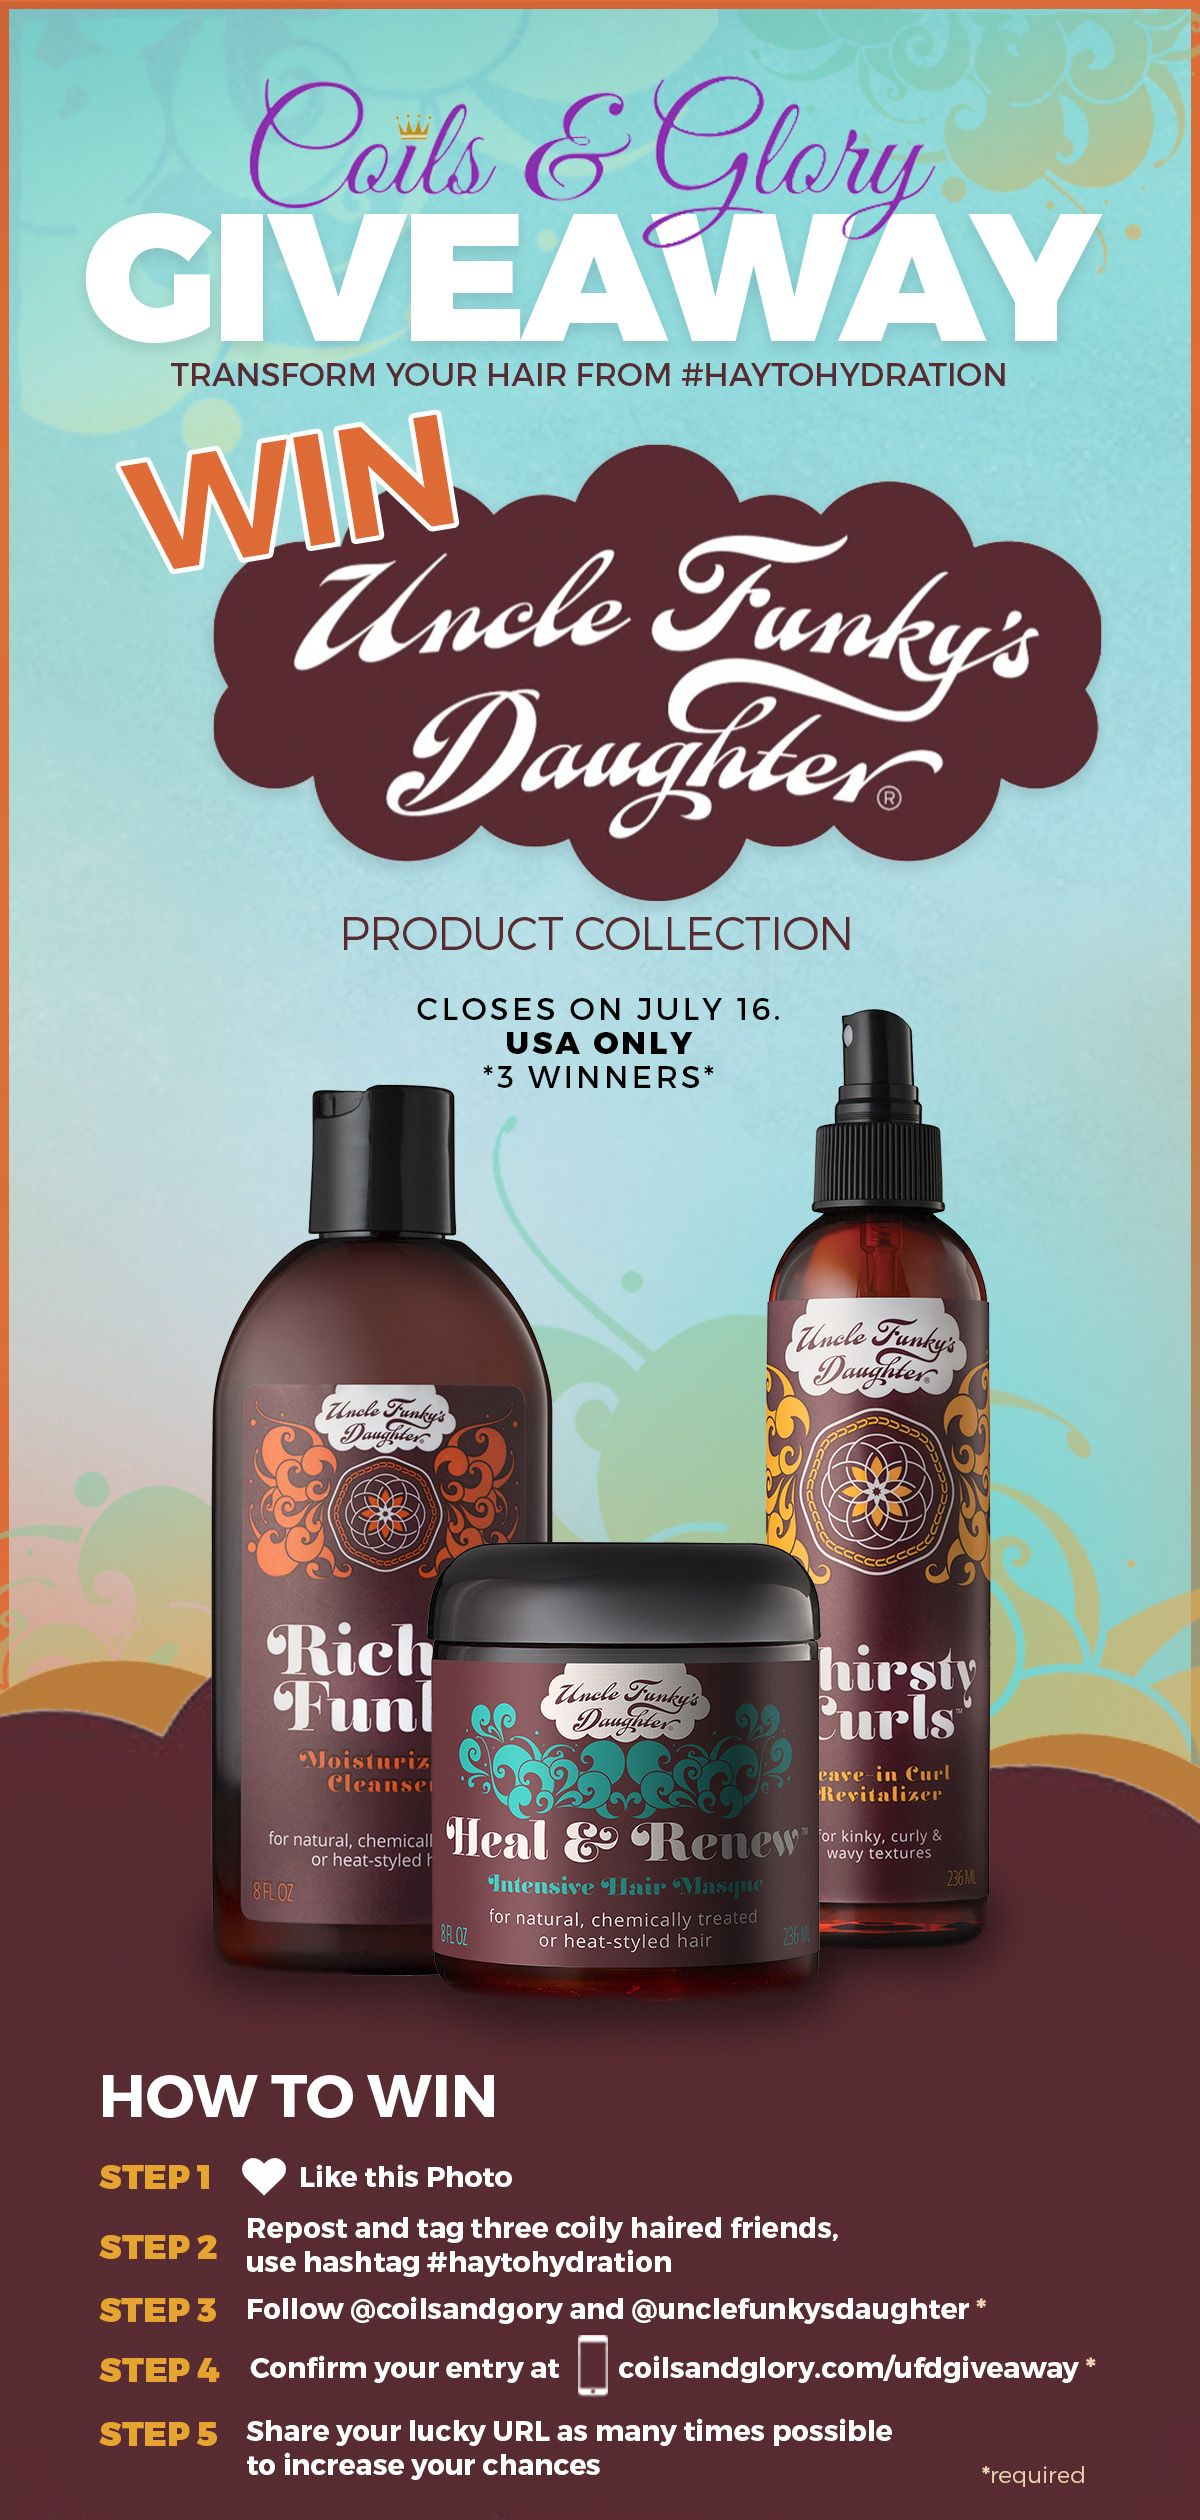 Pin by ellamary on coils u glory dry hair products giveaway